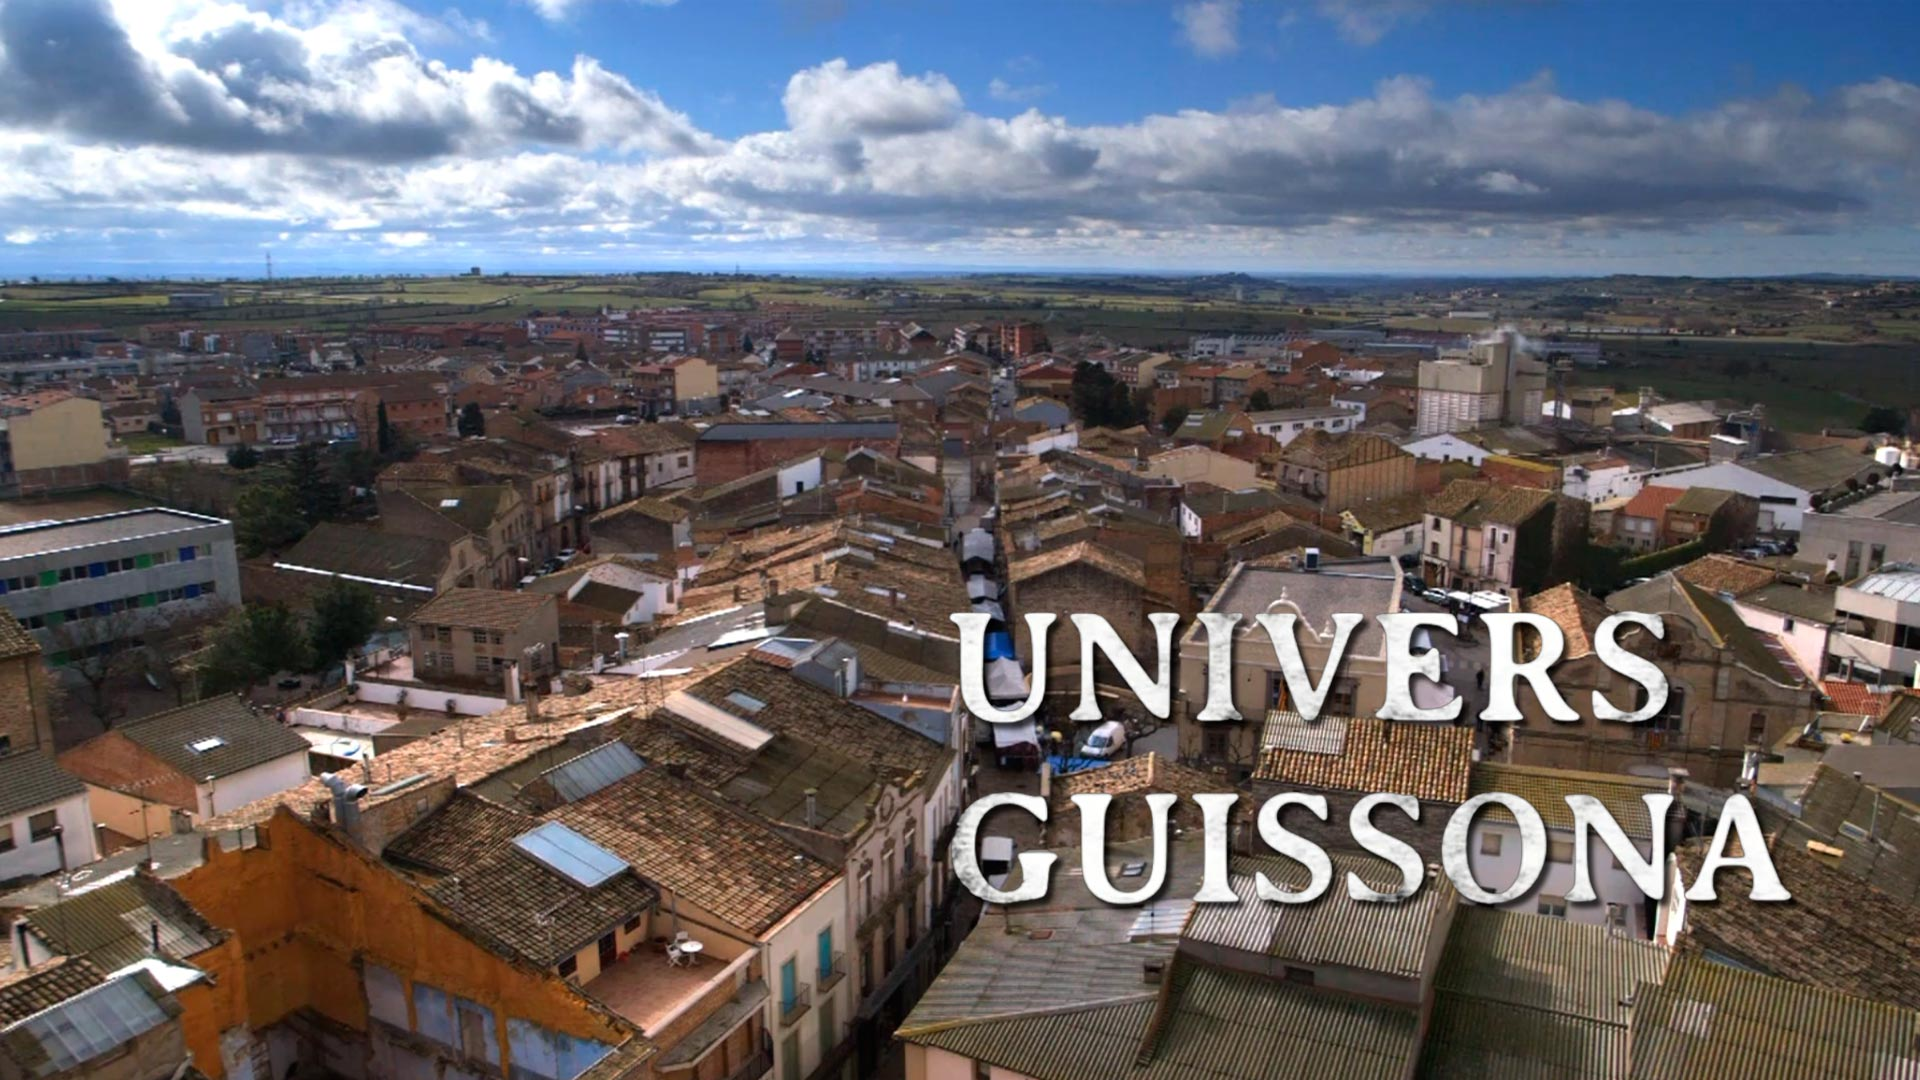 Univers_Guissona